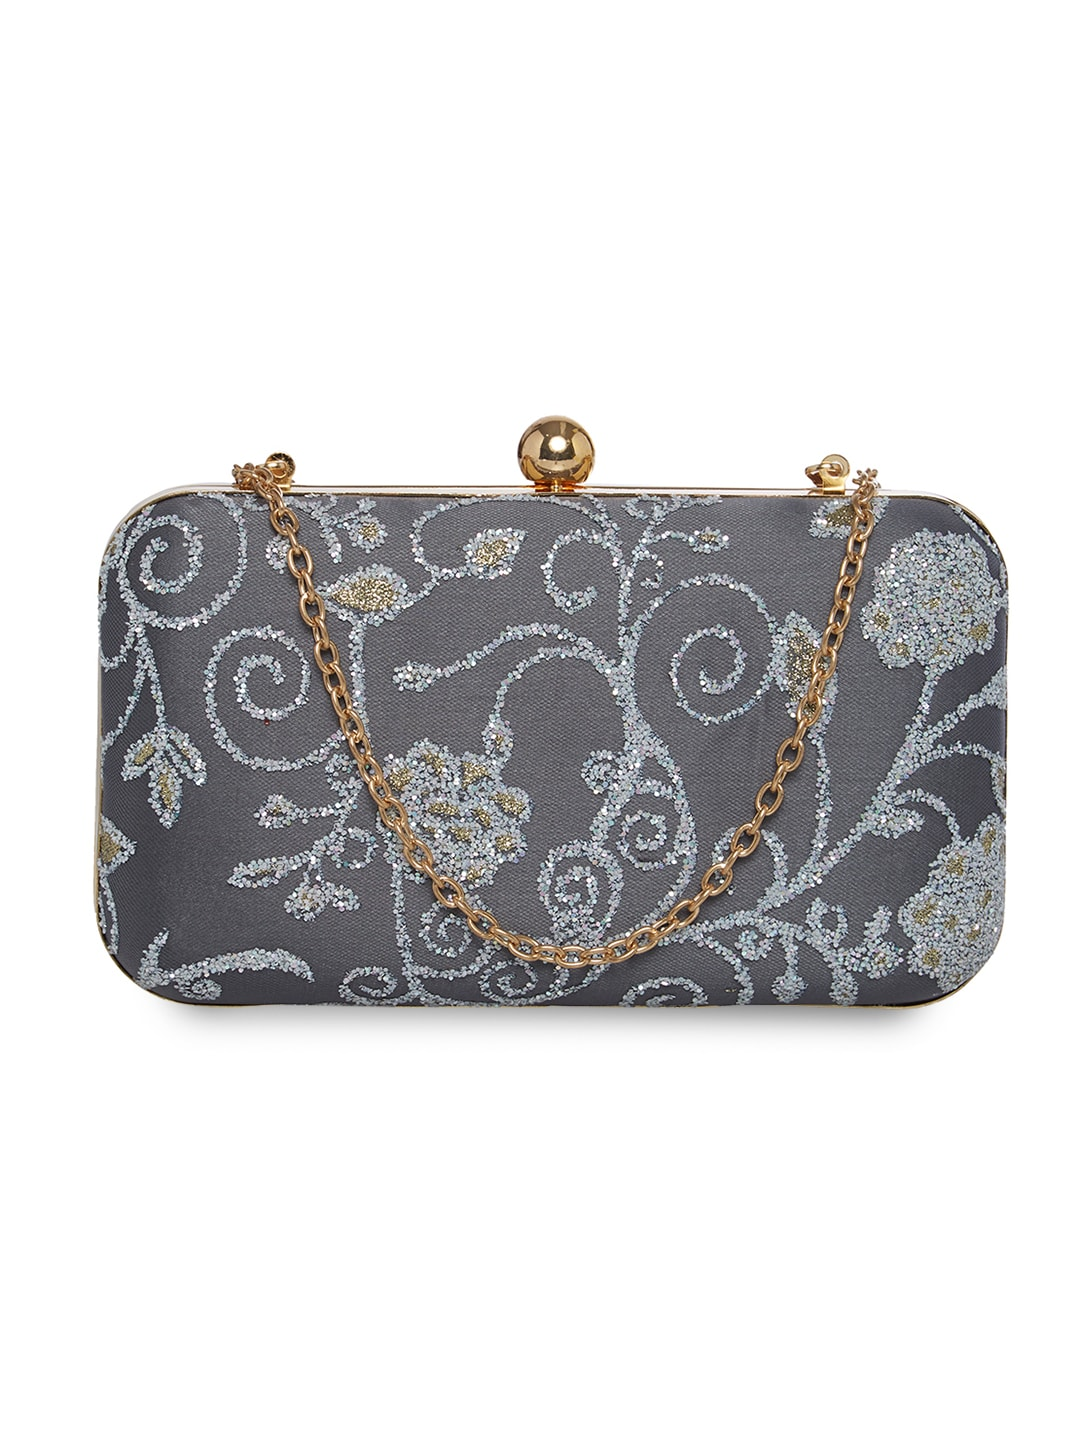 38db4009fcd Party Clutches - Buy Party Clutches Online in India